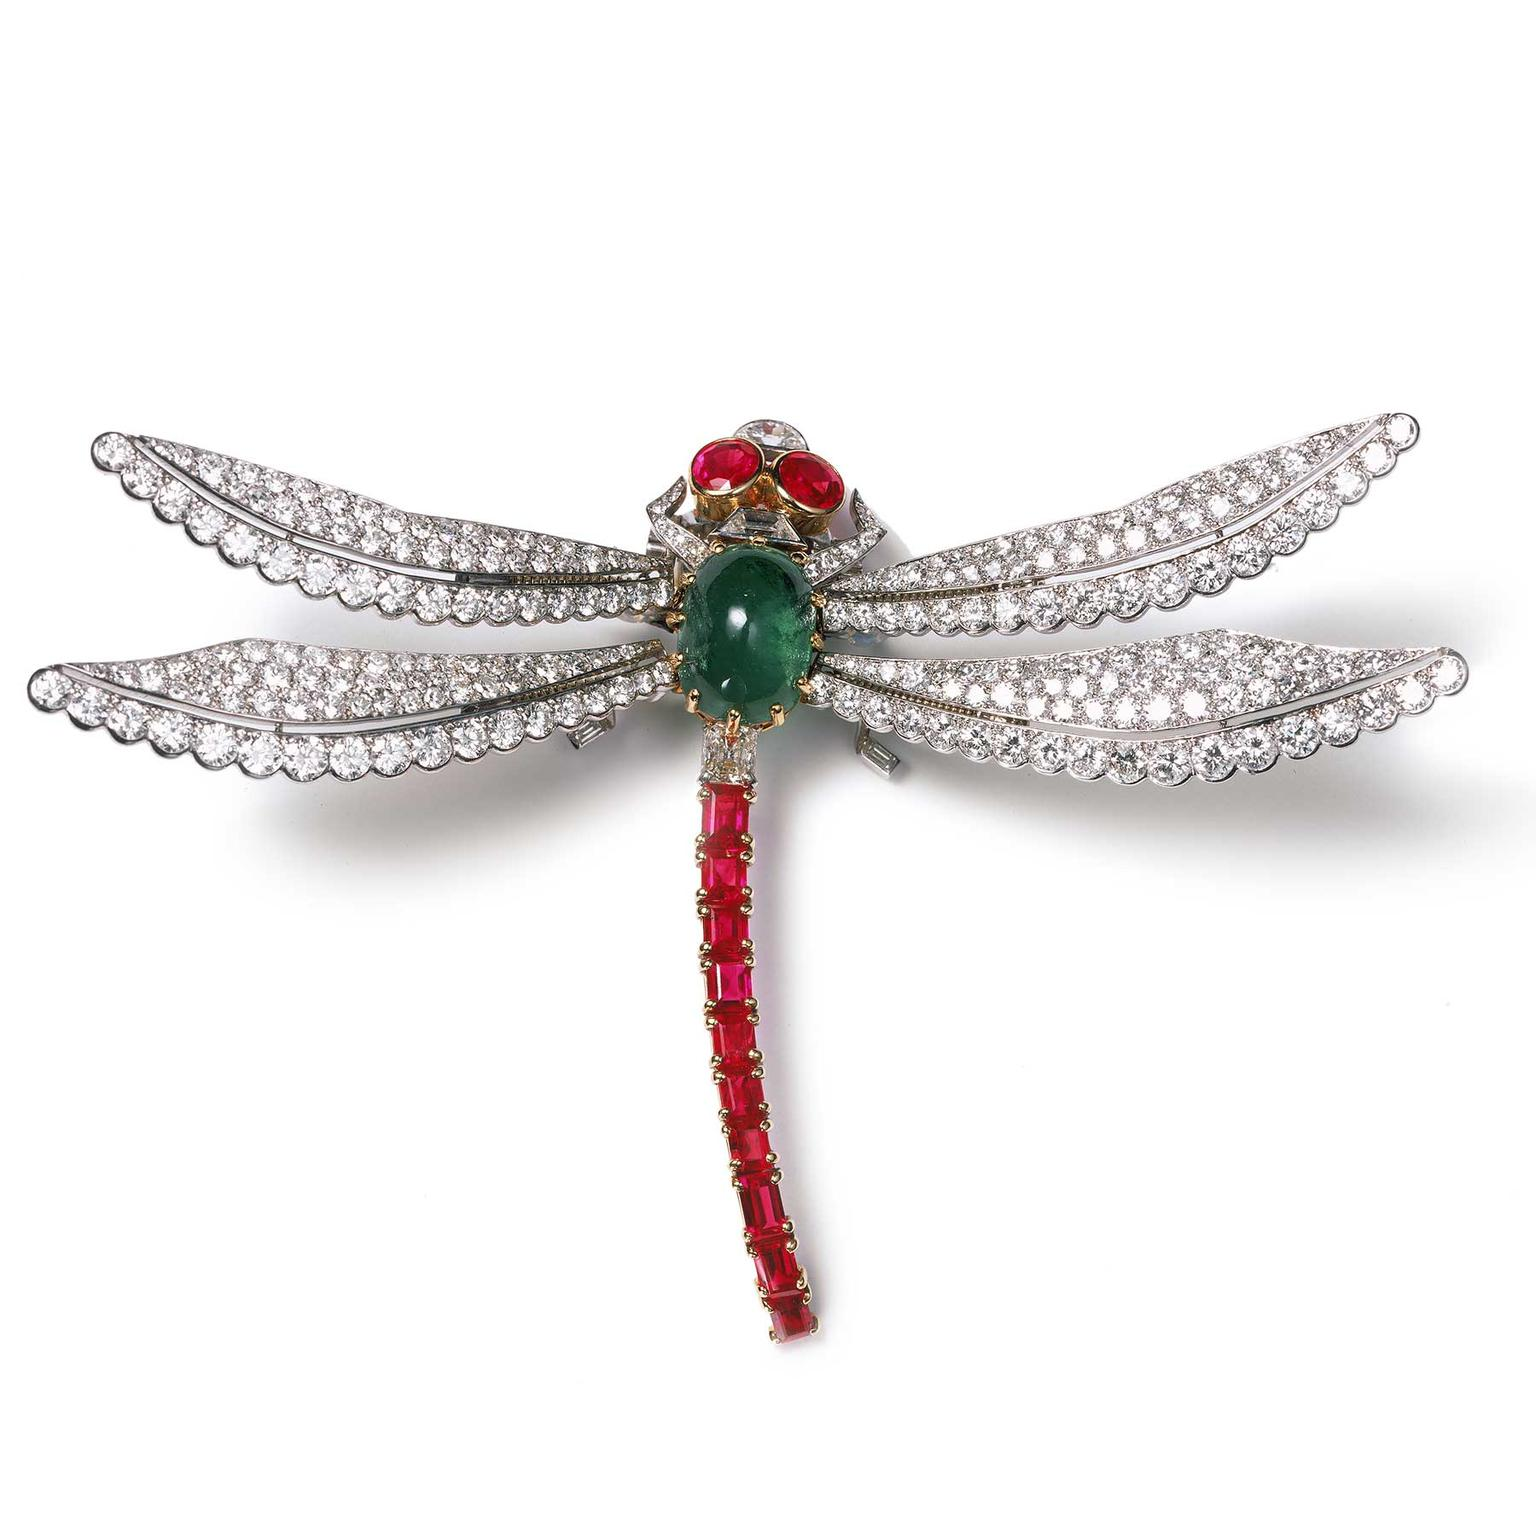 Cartier Collection dragonfly clip brooch dating from 1953